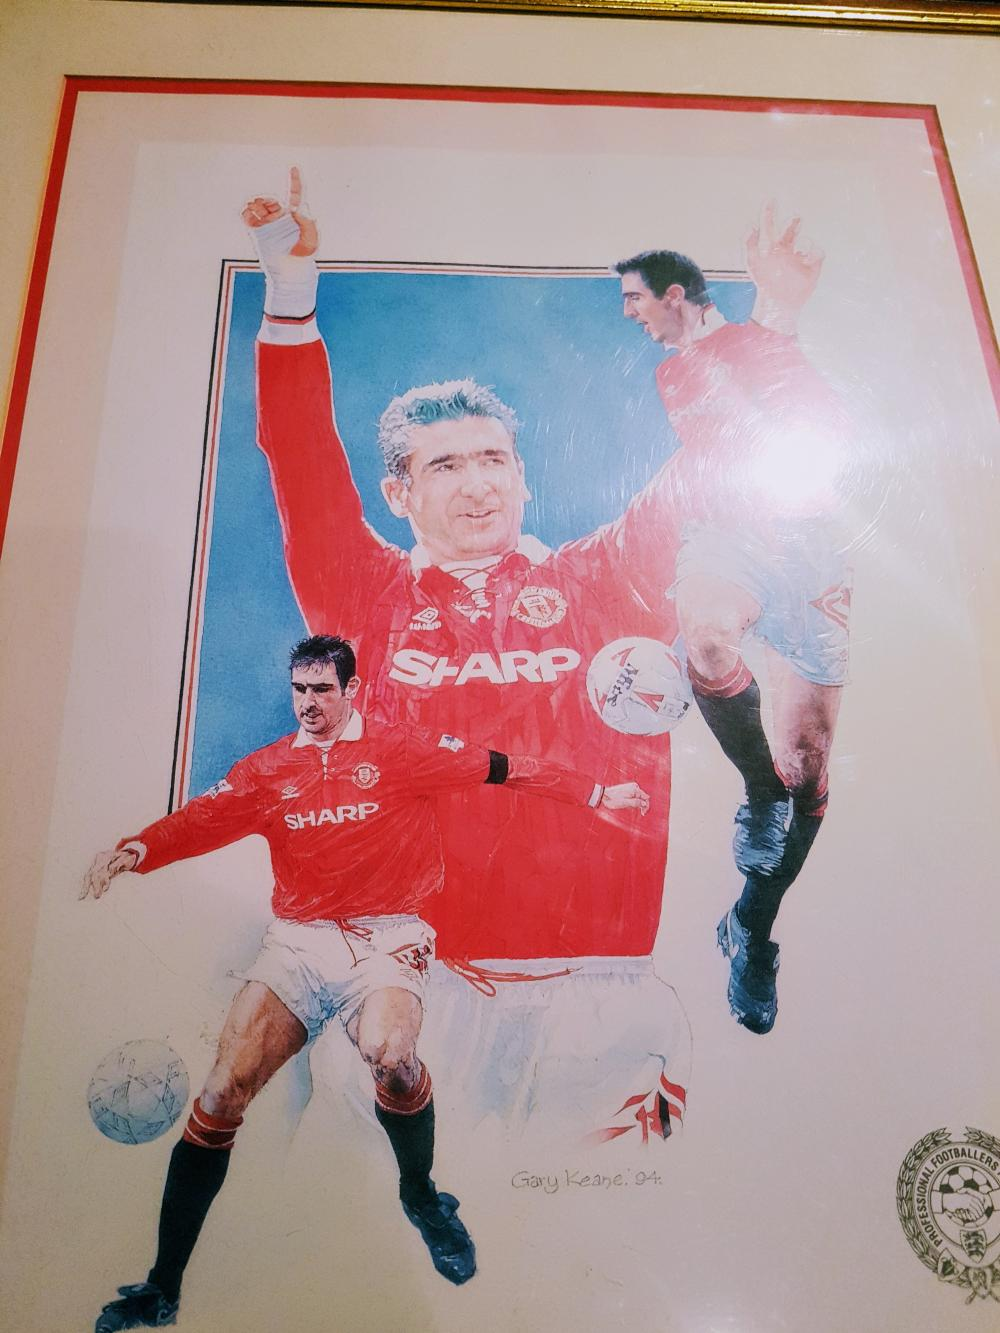 Lot 30 - Signed & framed 1994 print of LEGEND Eric Cantona (PFA Player of the Year). Daniel Pierre Cantona born 24 May 1966) is a French actor and former international footballer for the French national team. He played for Auxerre, Martigues,